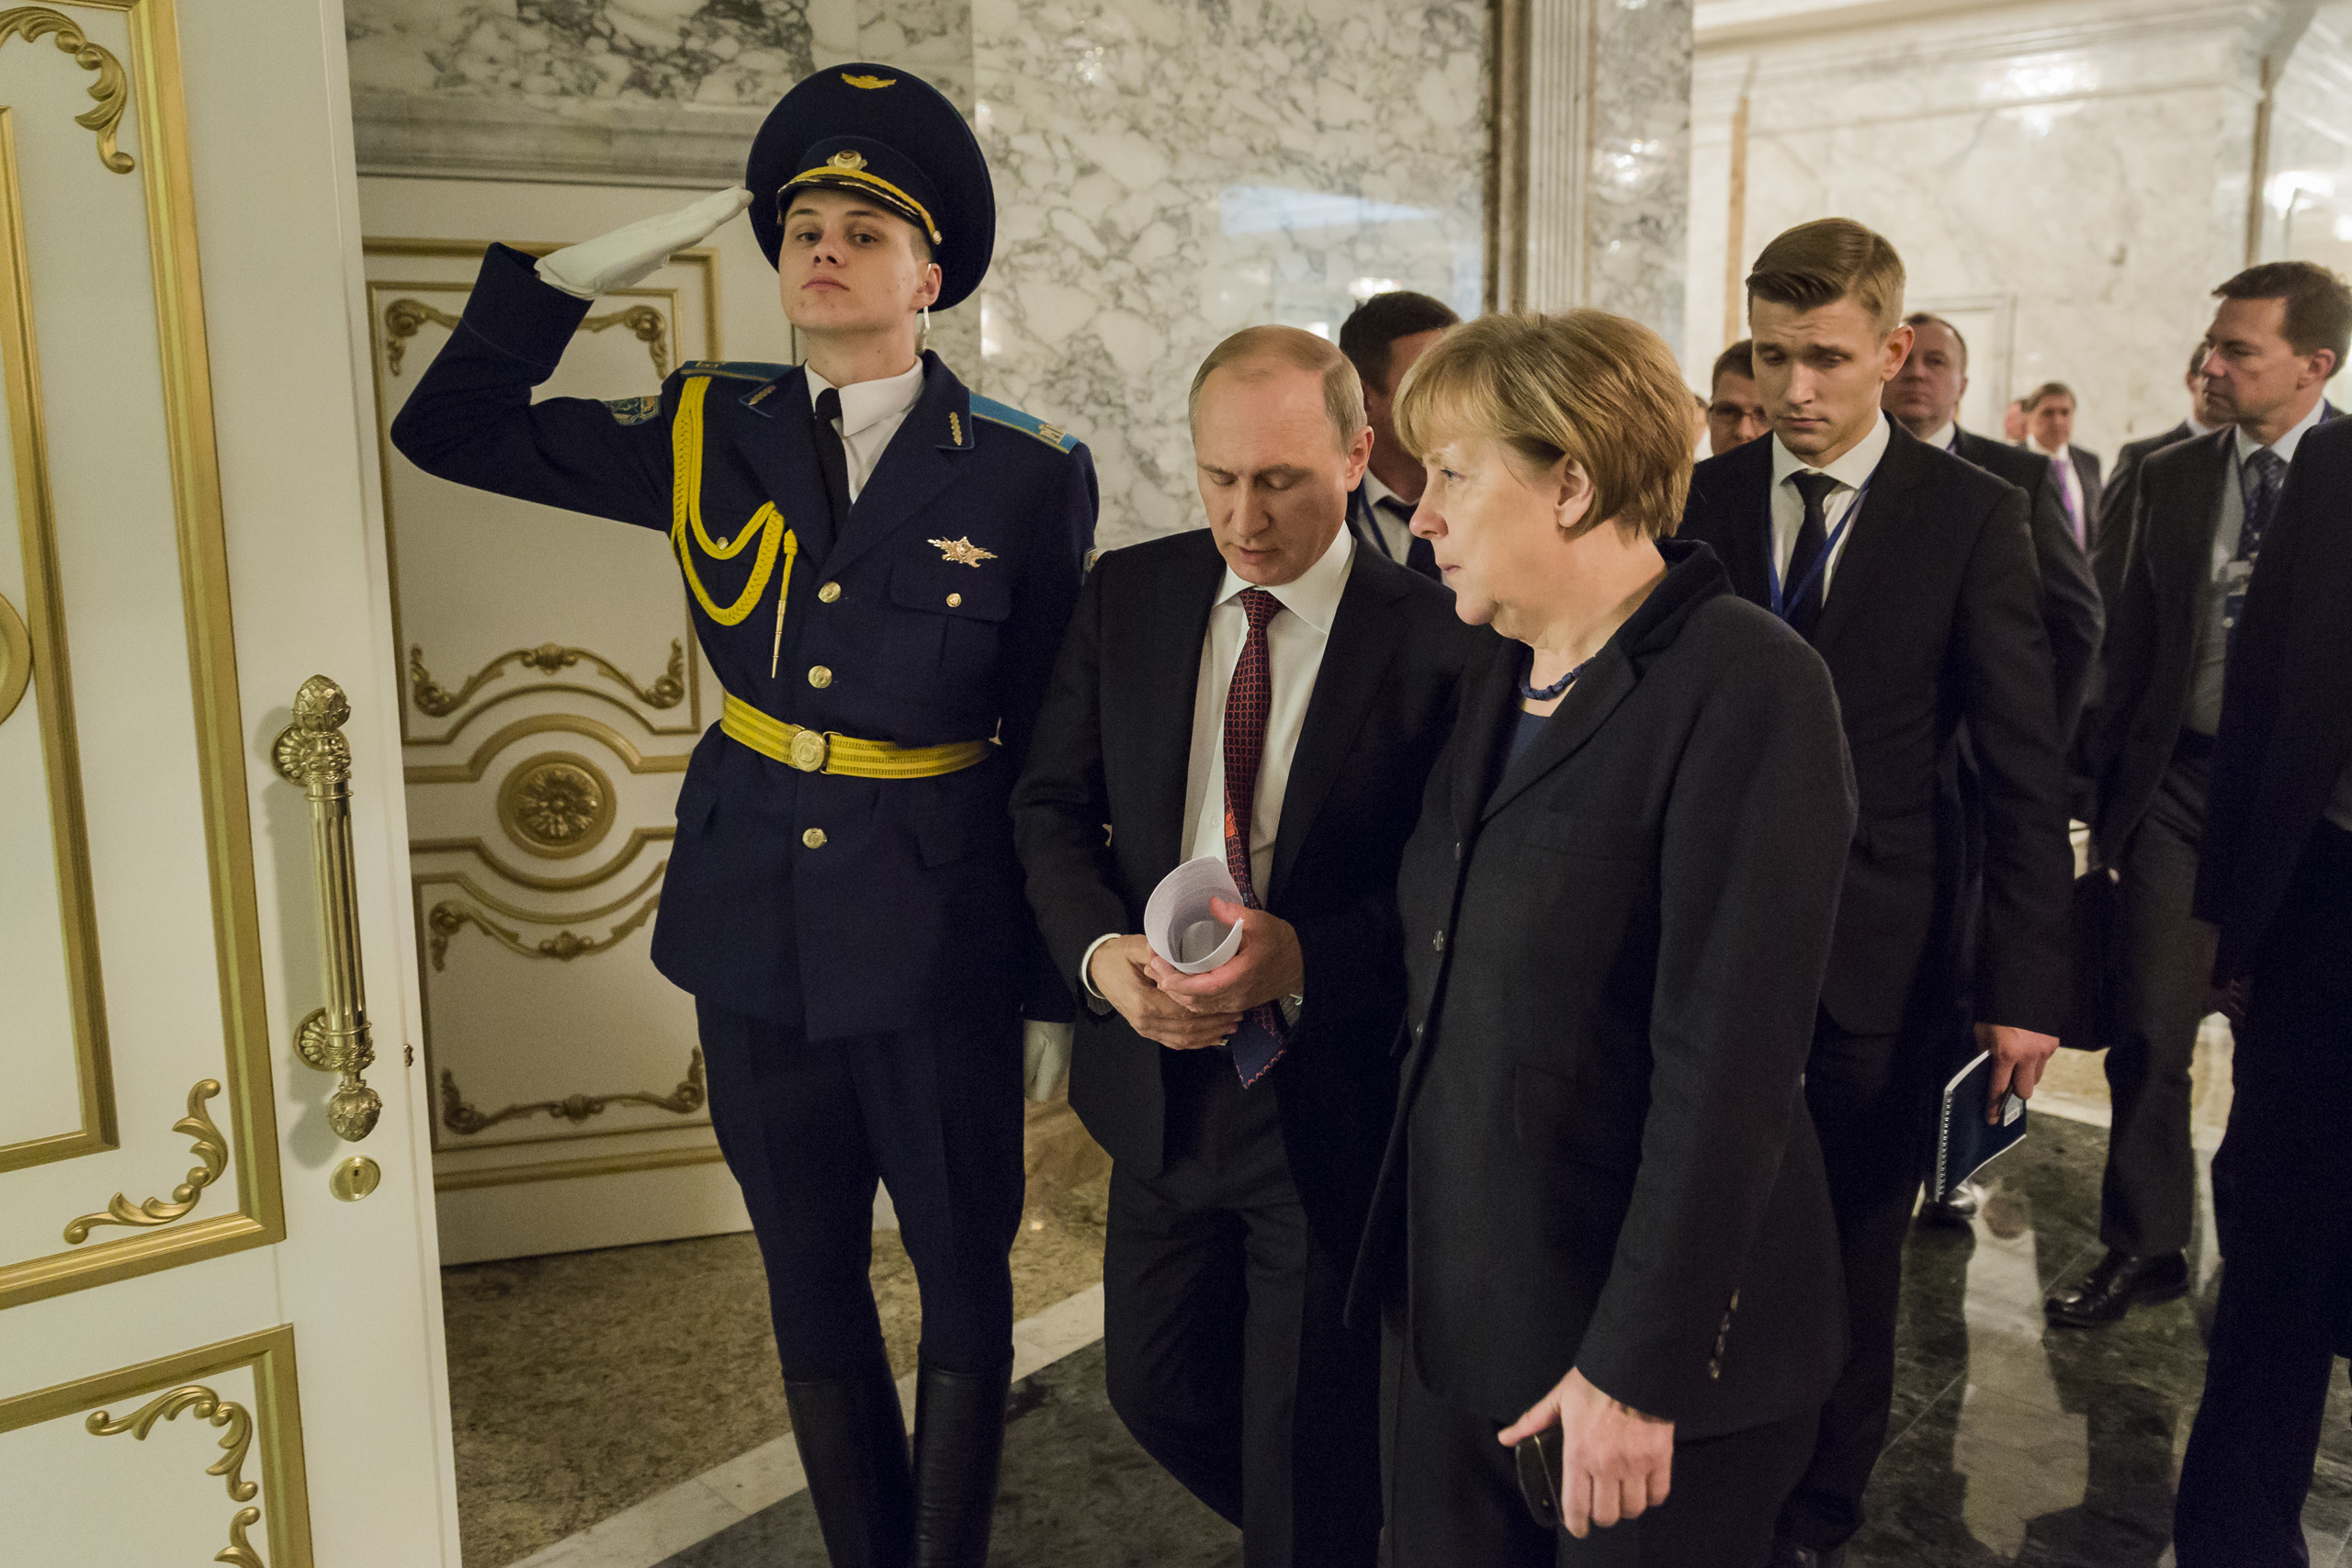 After a break during the peace talks for the conflict in Ukraine in Minsk (Belarus), Chancellor Merkel and President Putin of Russia, return to the negotiation table. Feb. 11, 2015.